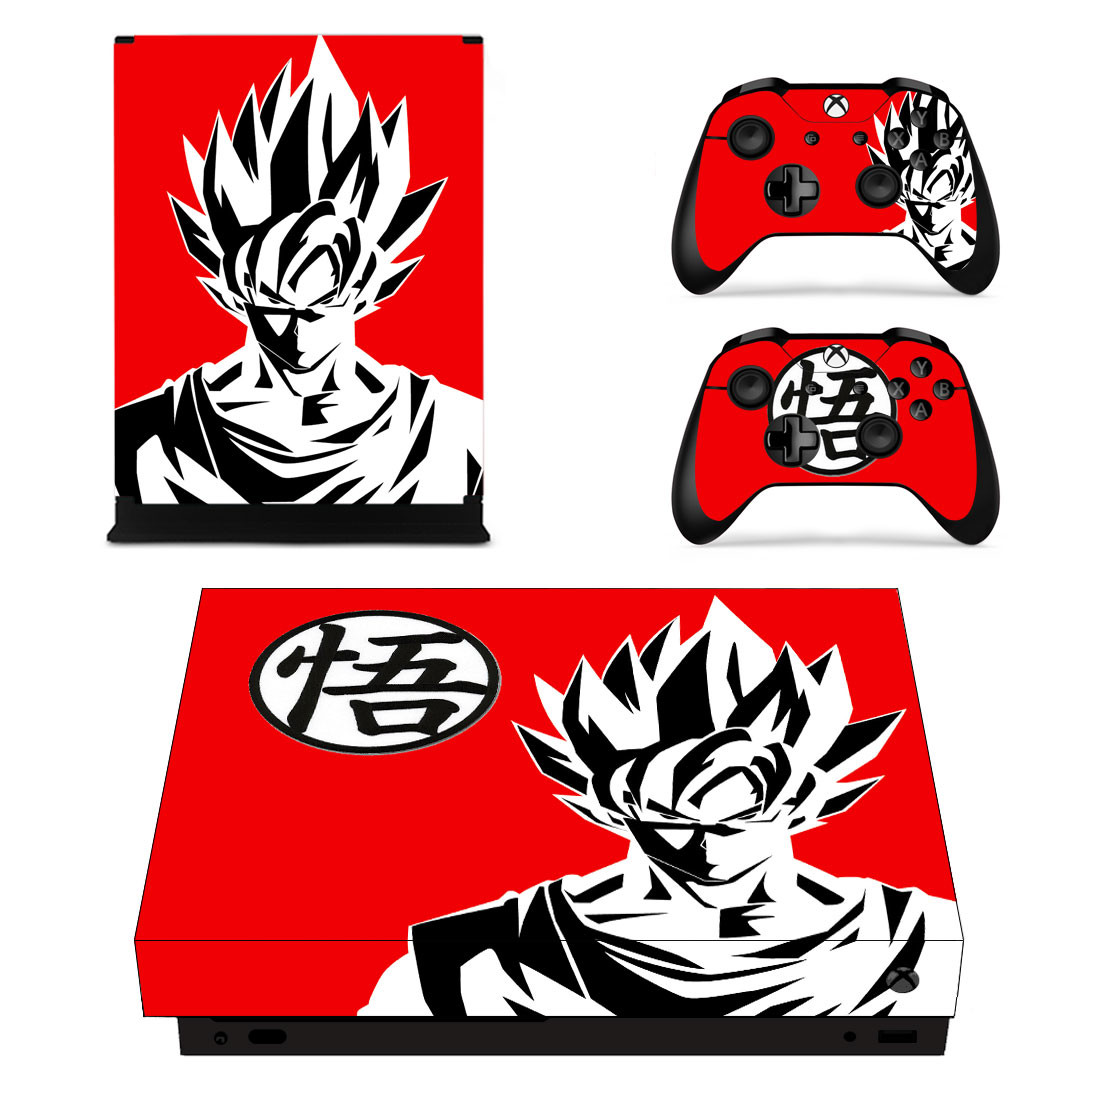 Details about dragon ball z design theme vinyl sticker for new xbox one x console controller